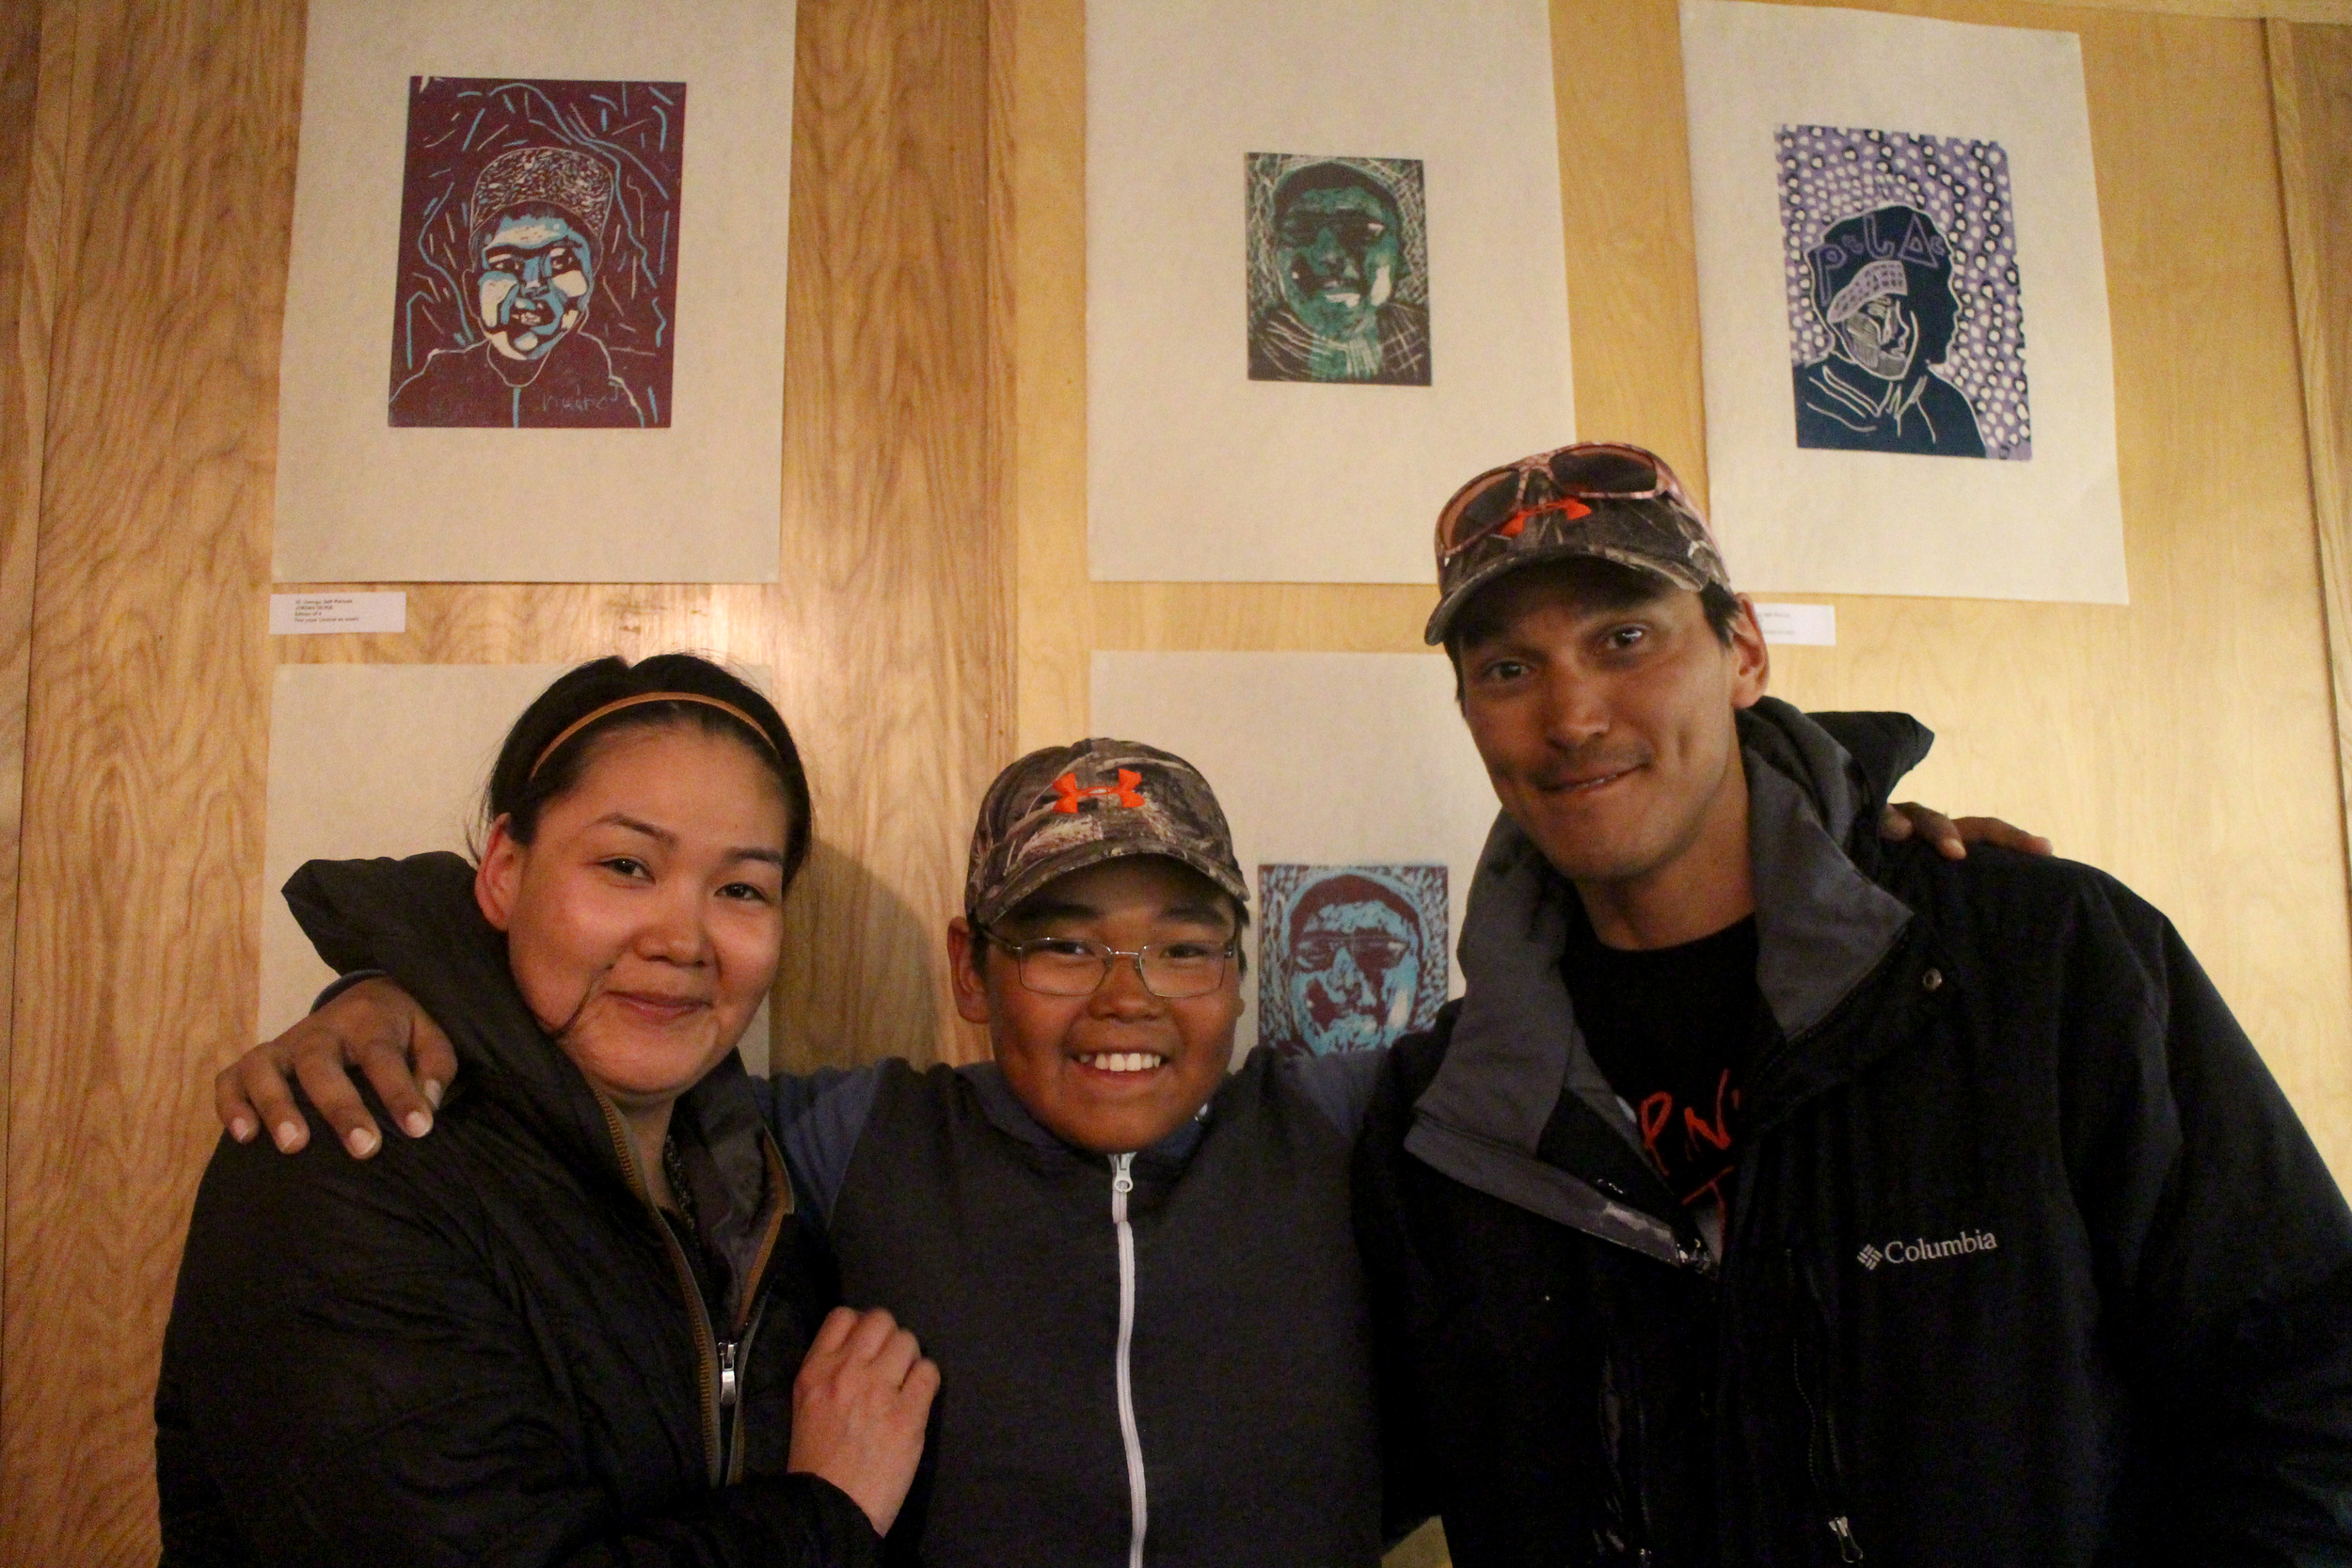 The Taukie Family: Johnnybou in the middle with his two-layer linocut self-portrait behind him.